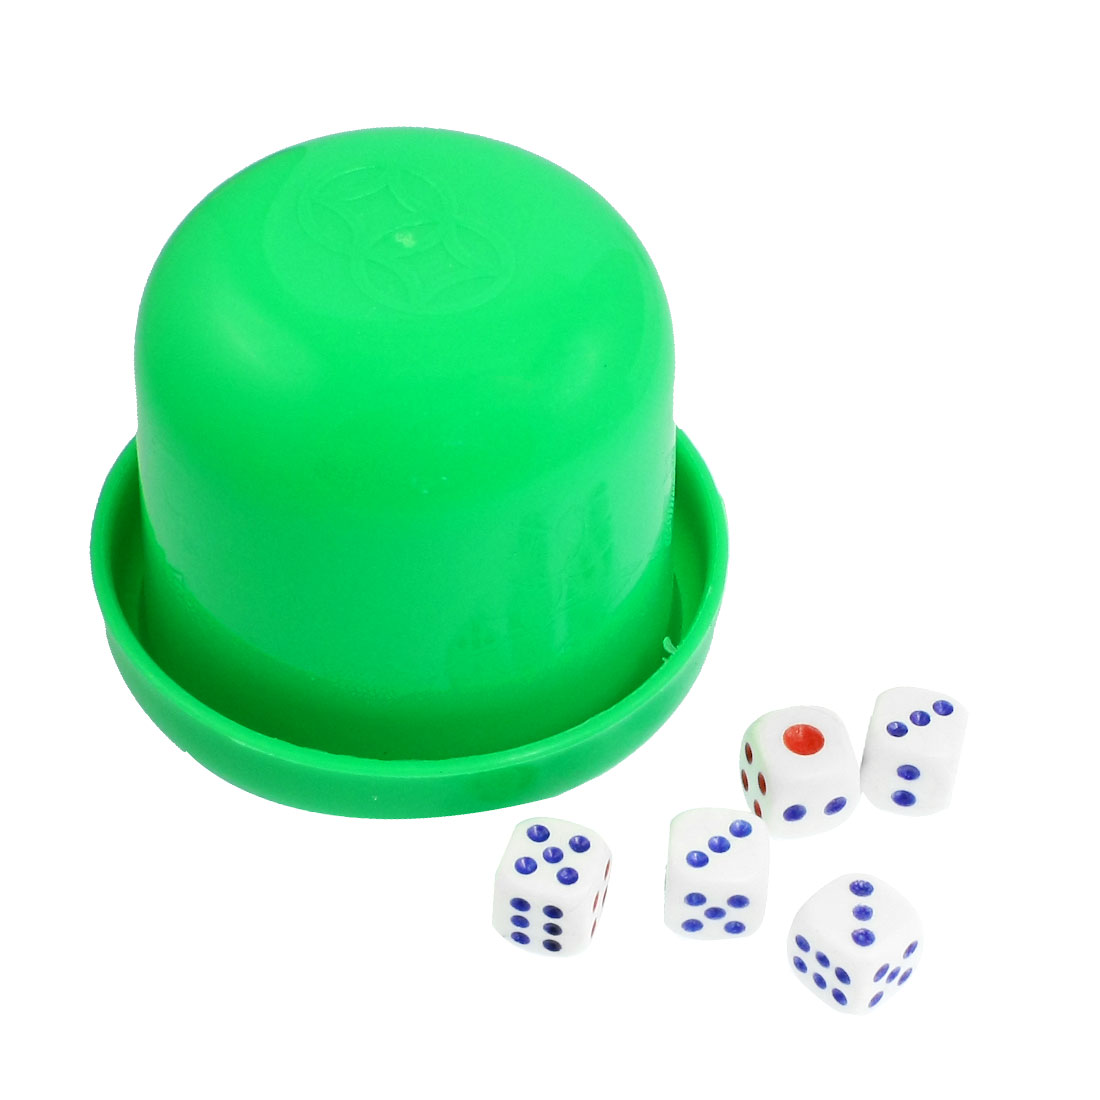 KTV Bar Green Plastic 5 Dices Casual Dice Shaker Cup Toy